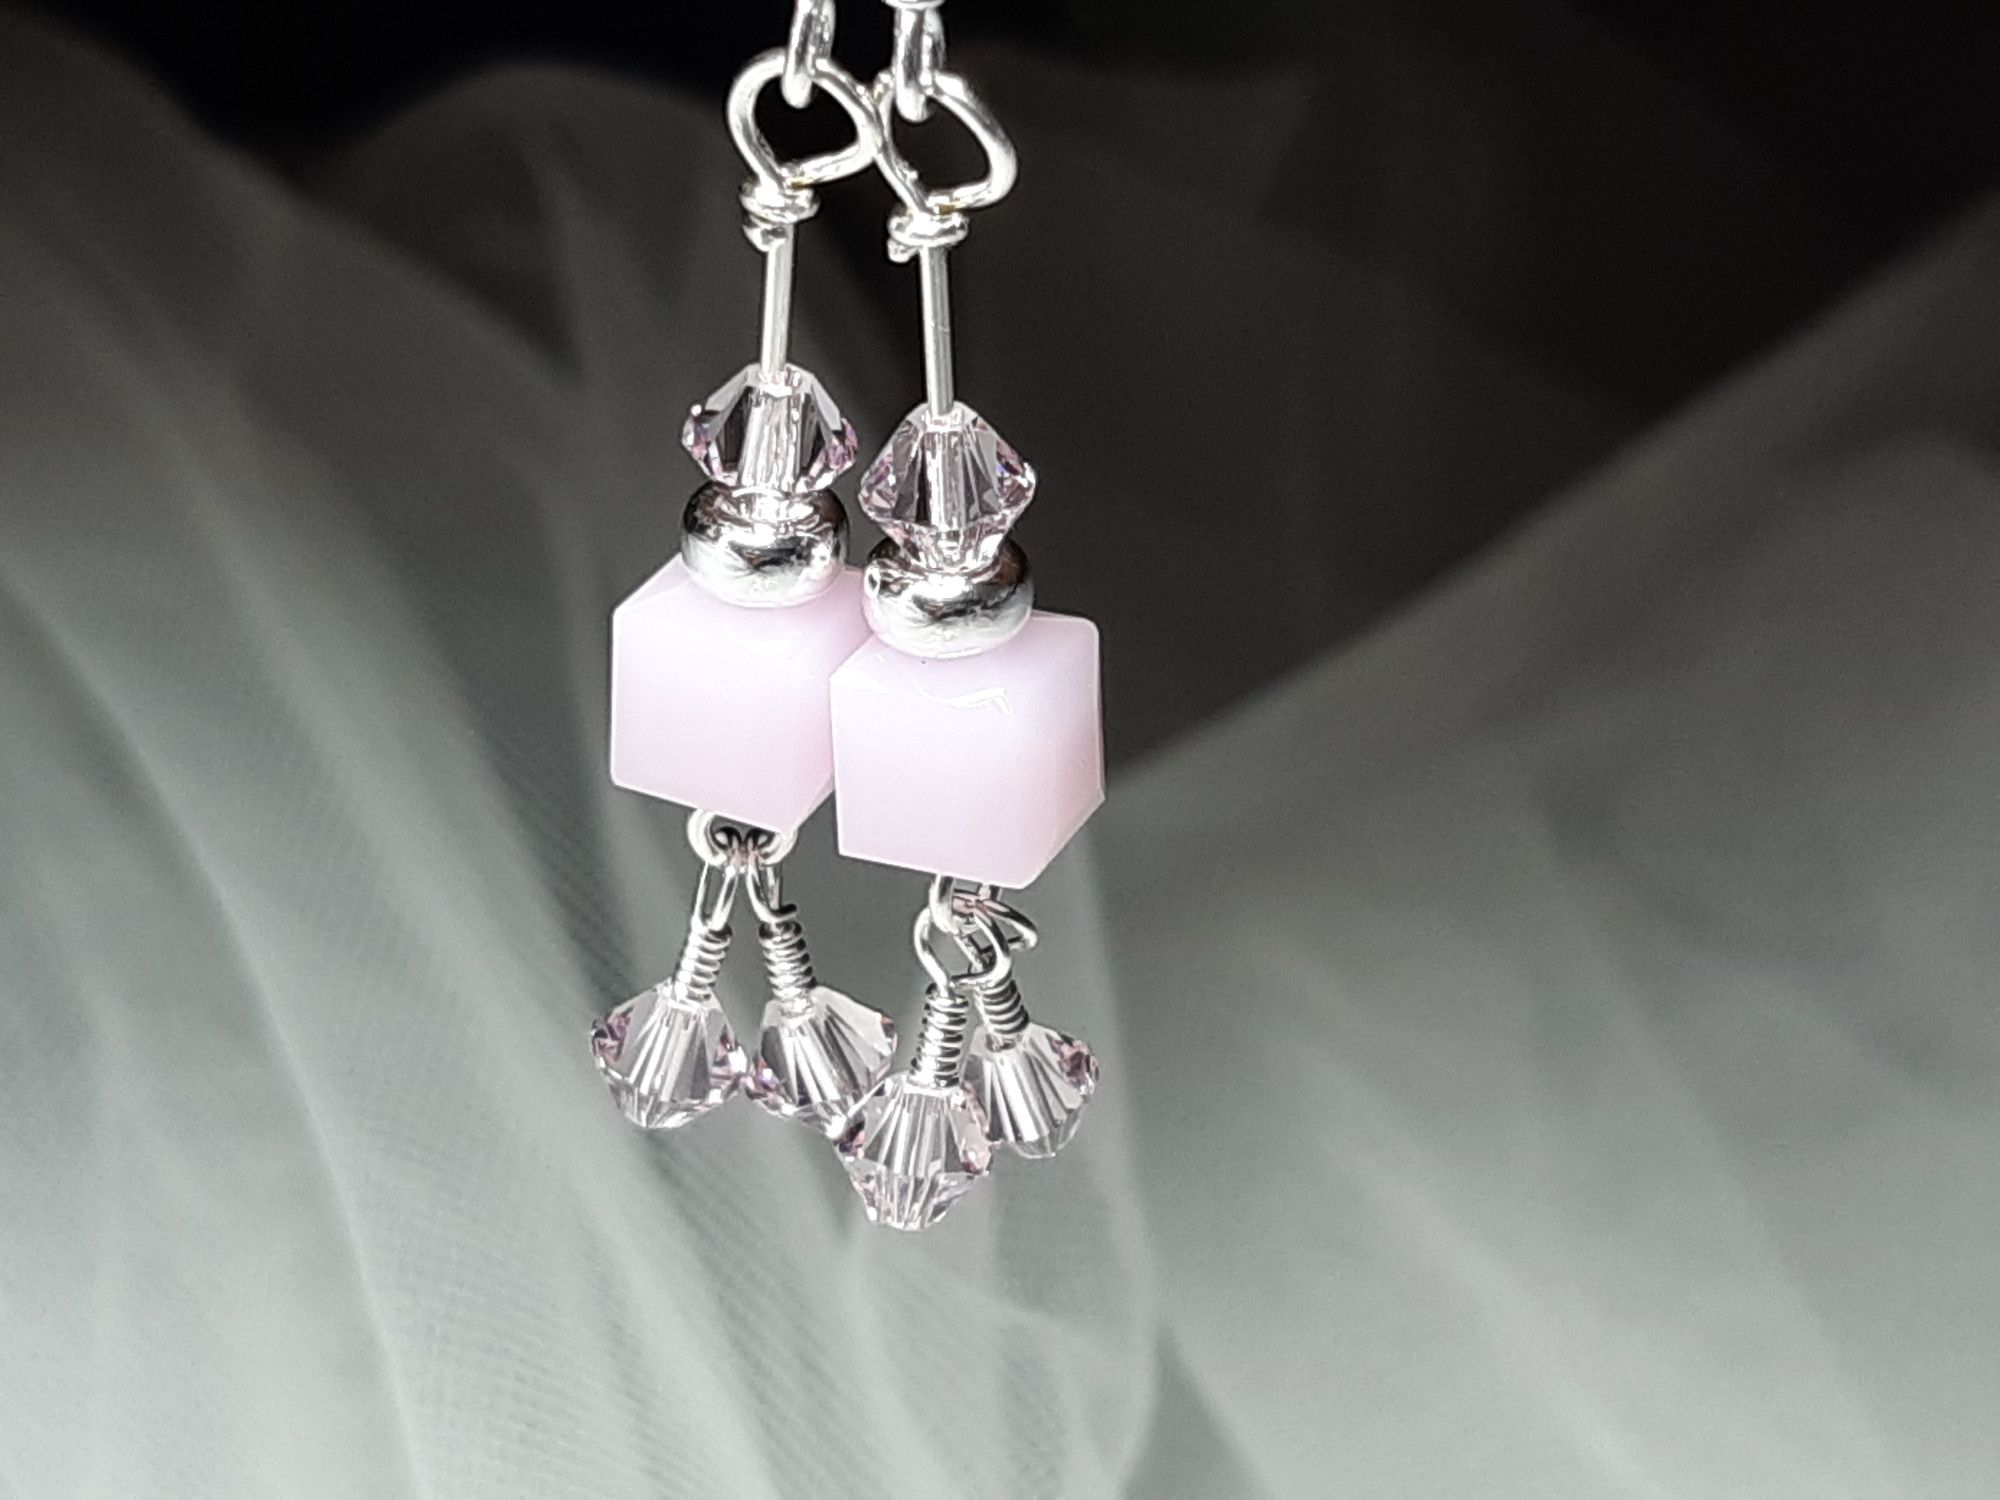 Occasion-peony pink+sterling silver earrings-5.jpg